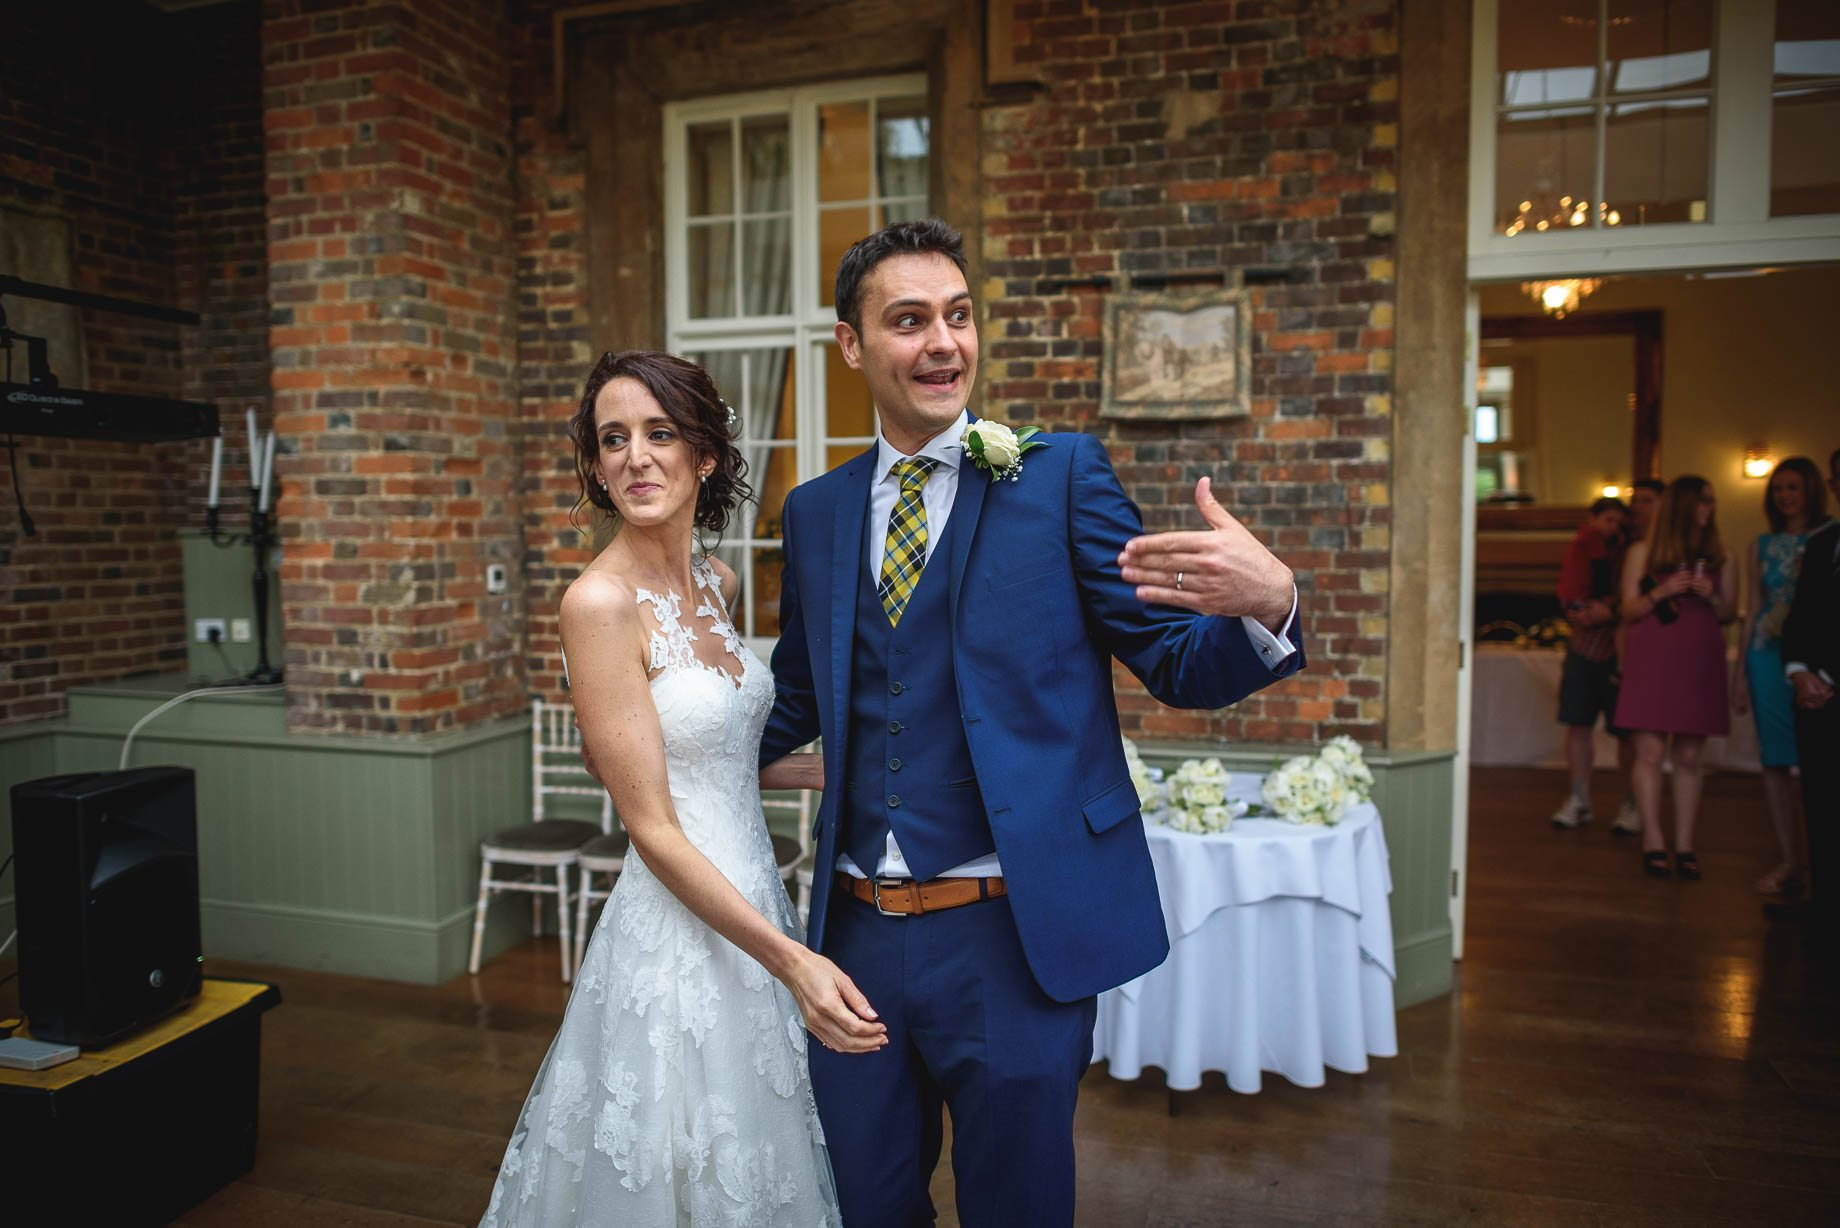 Hertfordshire wedding photography - Sarah and Stephen by Guy Collier Photography (156 of 161)